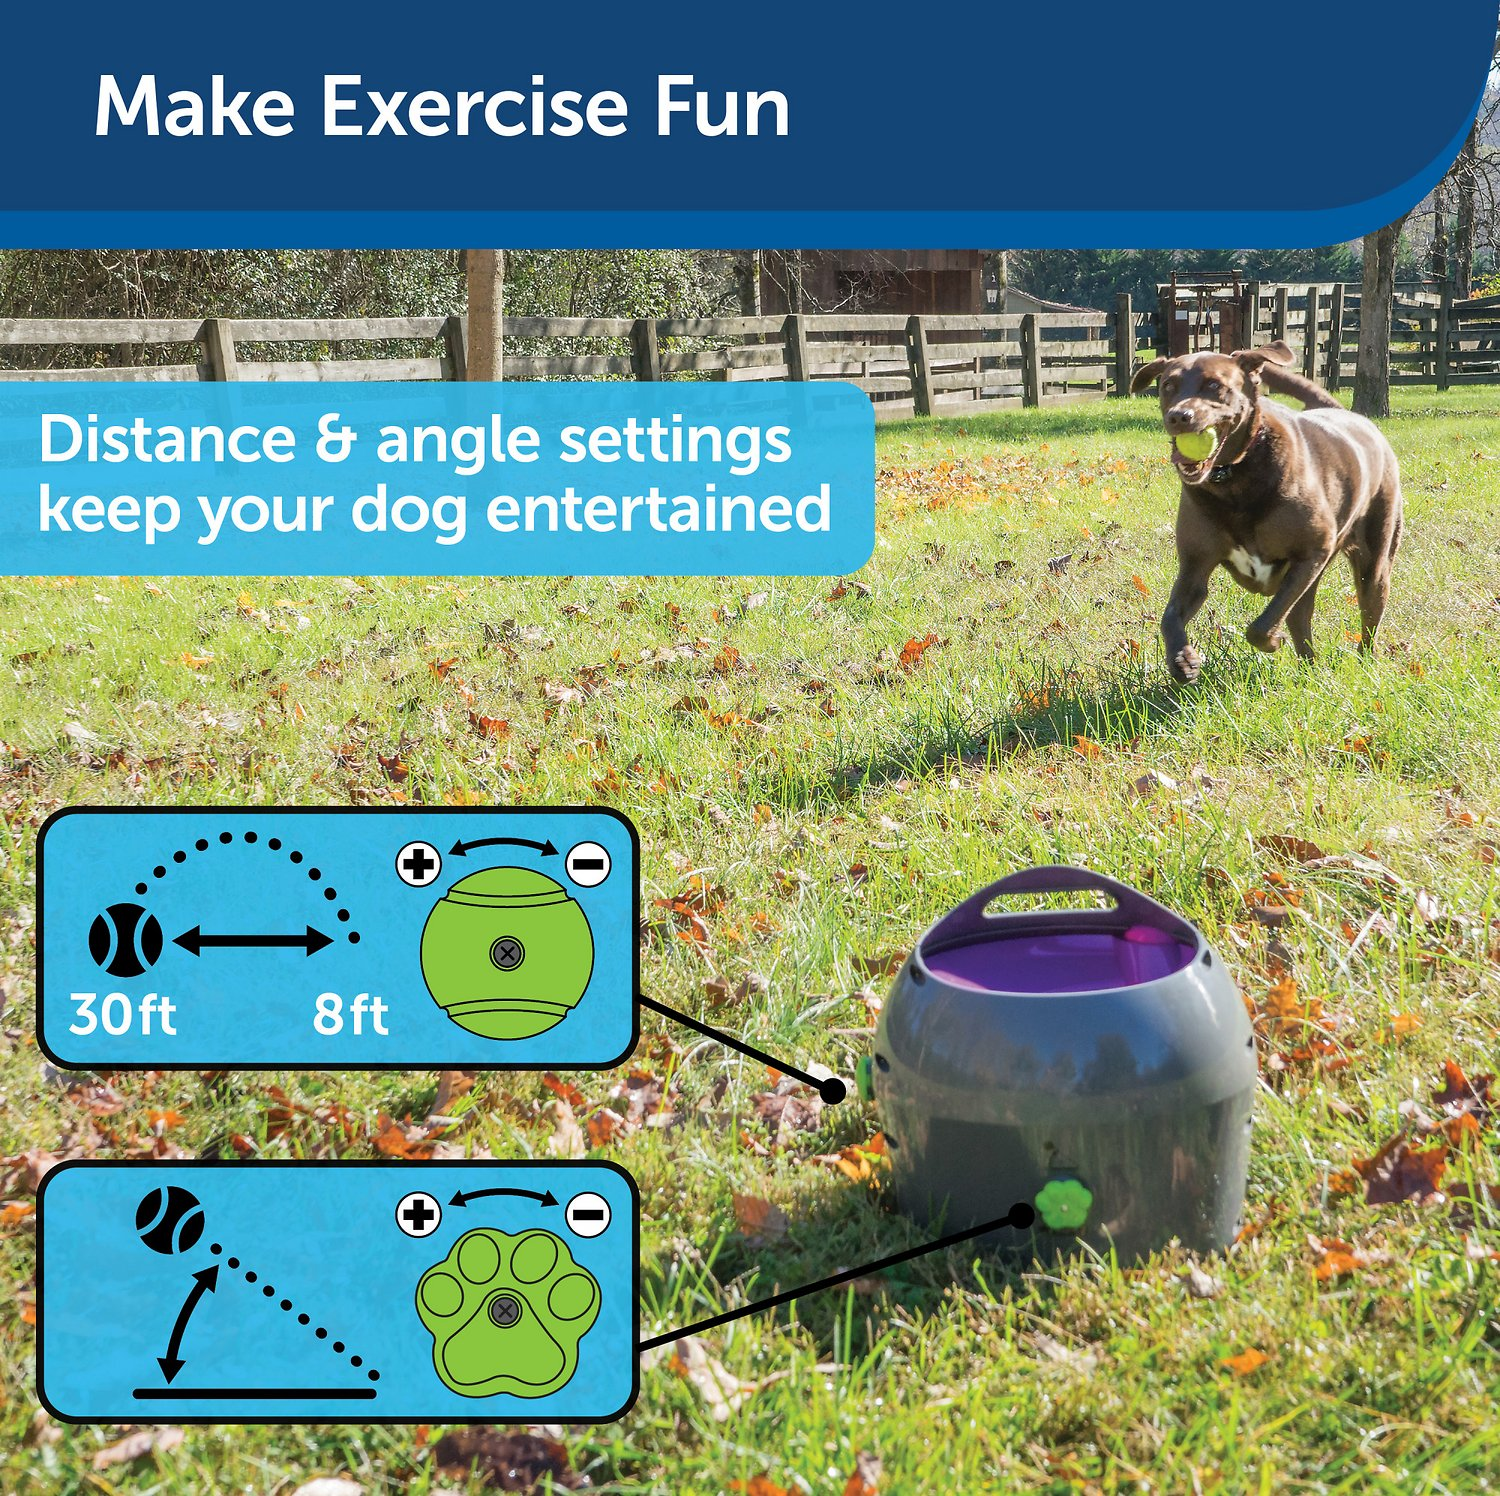 PetSafe Automatic Ball Launcher Dog Toy Tennis Ball Throwing Machine for Dogs in Easy-Open Packaging